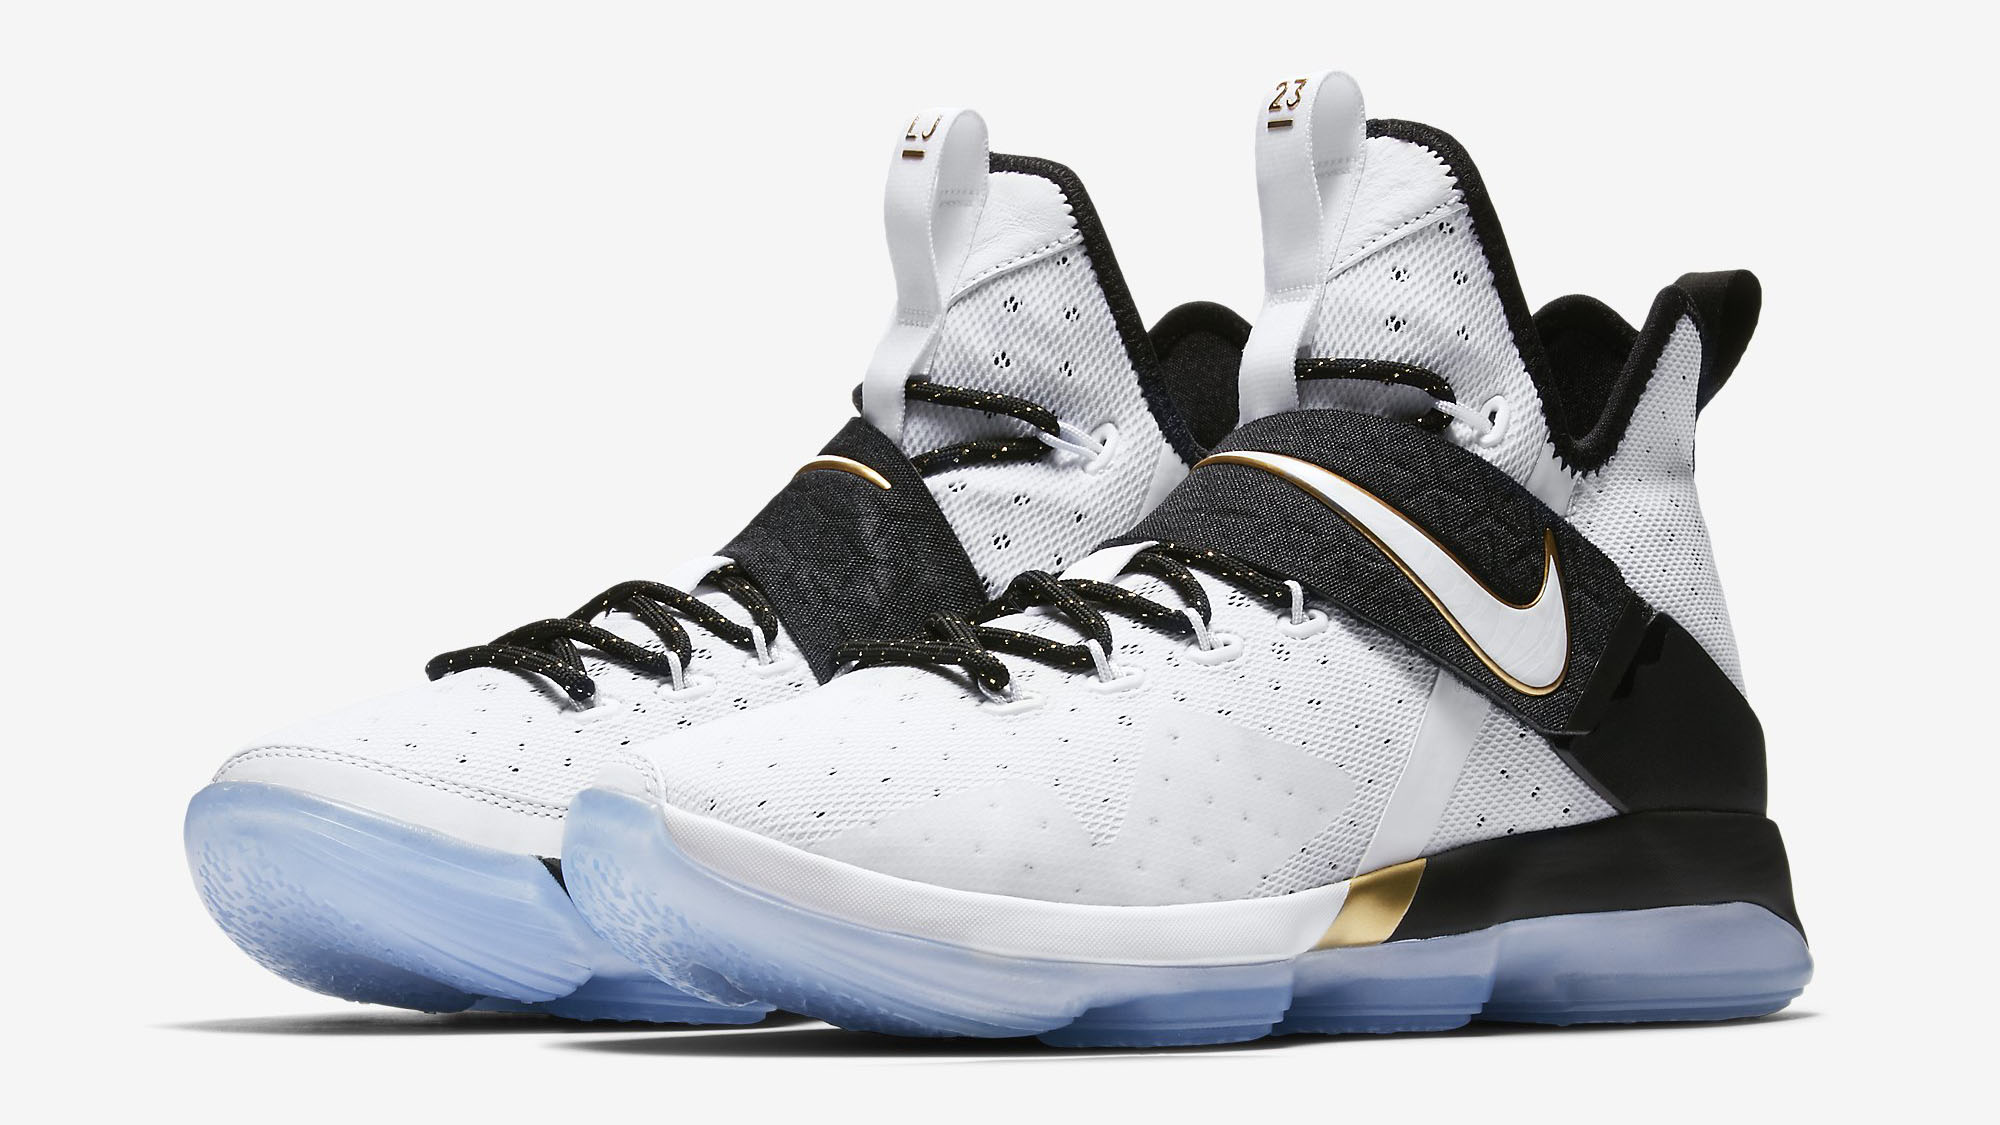 a4cf5caf4805 Nike LeBron 14 Performance Review